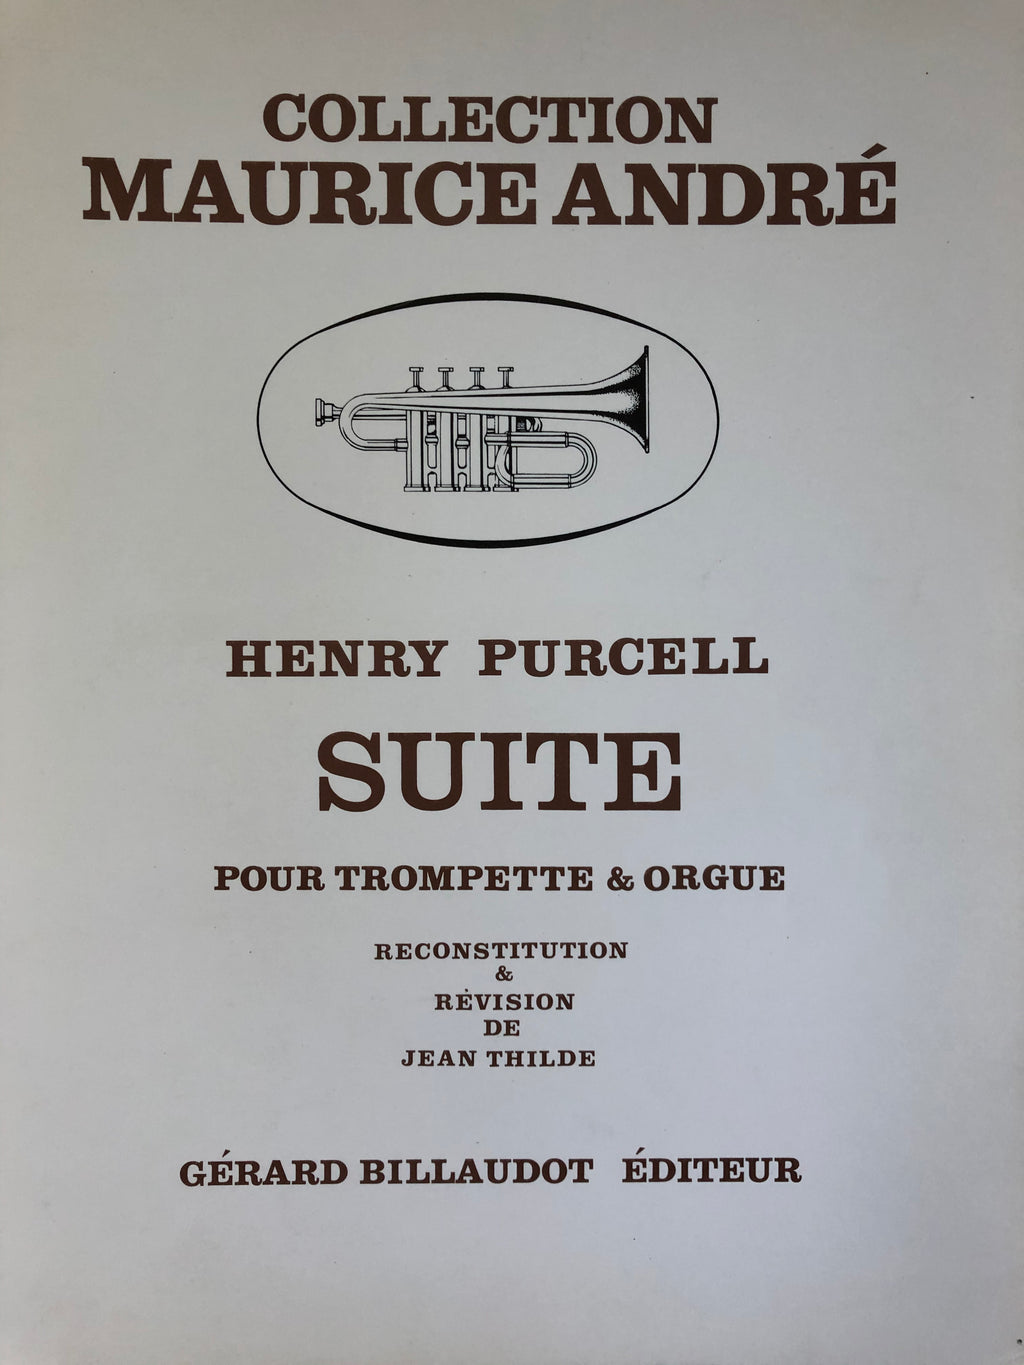 Suite pour Trompette & Orgue, Purcel, Maurice Andre Collection - Scattando Verkleedhuis